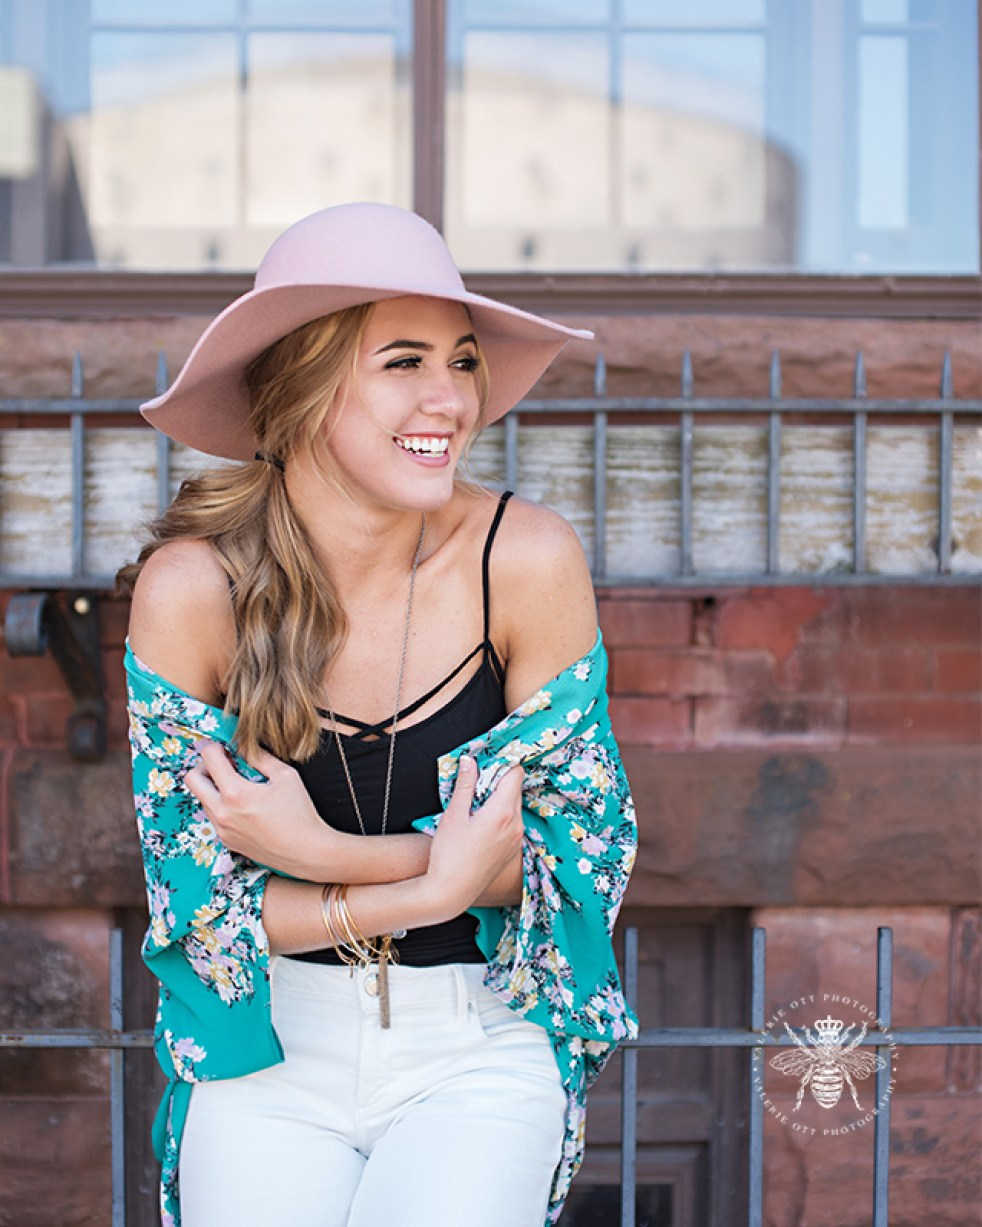 senior girl poses wearing pink hat, green floral shawl, long necklace, black tank top, and white jeans.